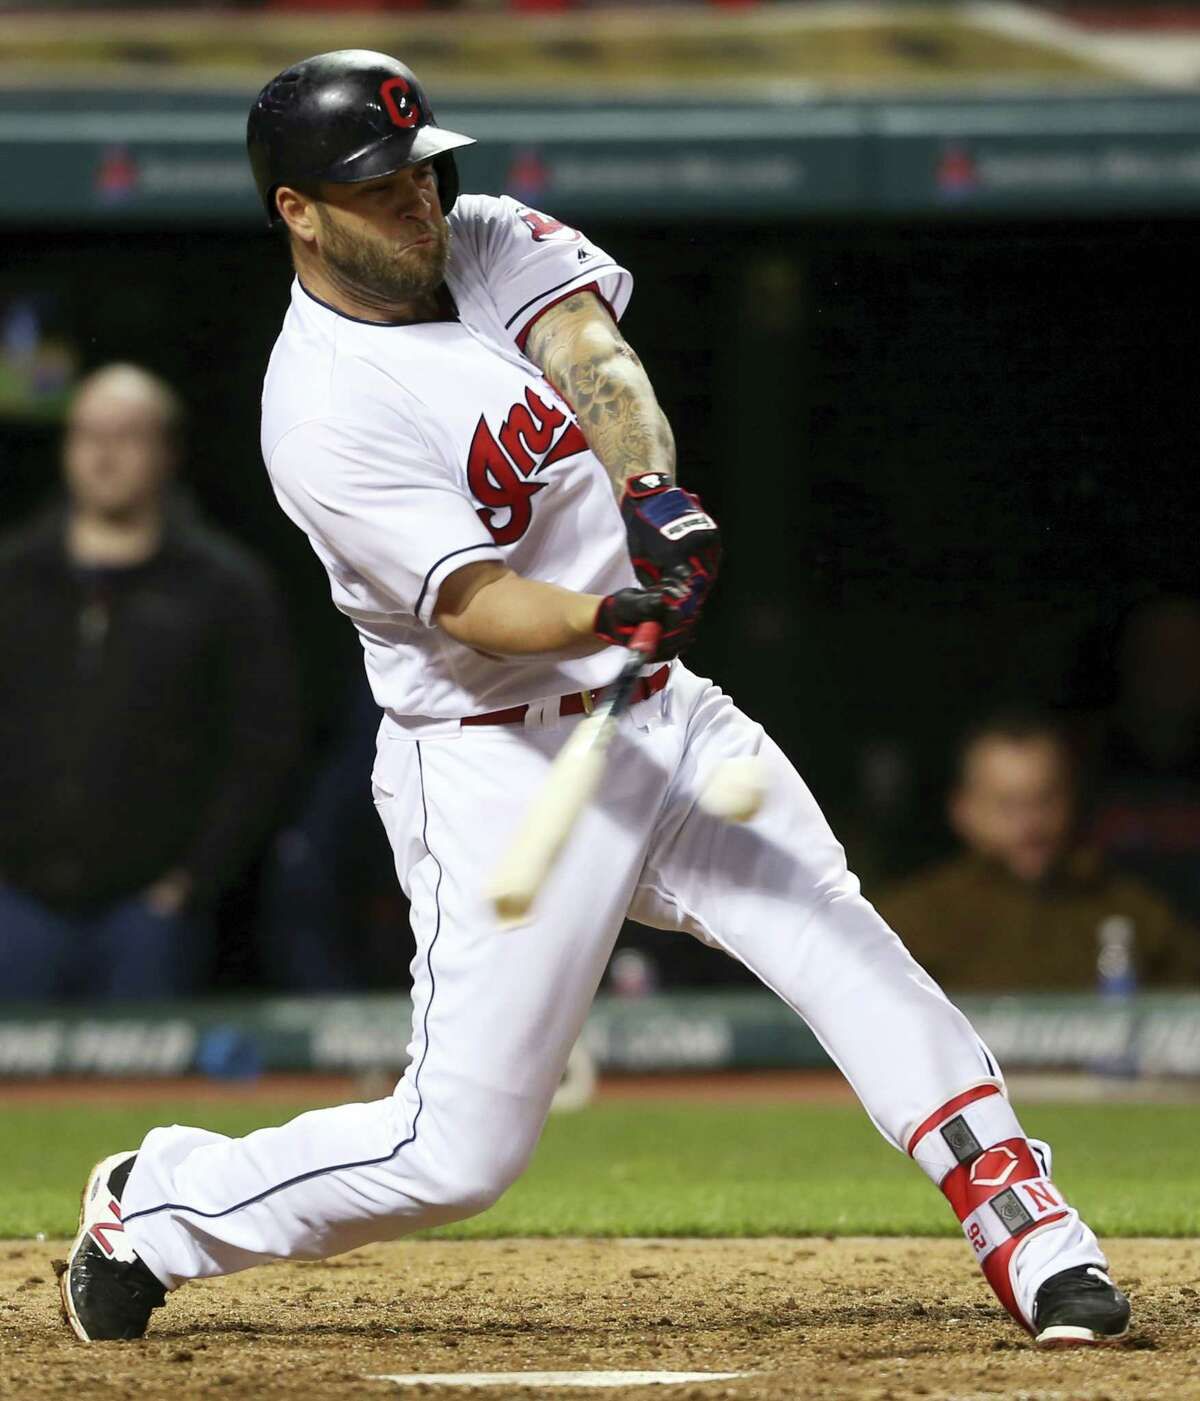 Cleveland Indians' Mike Napoli hits a solo home run off Boston Red Sox relief pitcher Junichi Tazawa during the seventh inning of a baseball game, Wednesday, April 6, 2016, in Cleveland. (AP Photo/Ron Schwane)